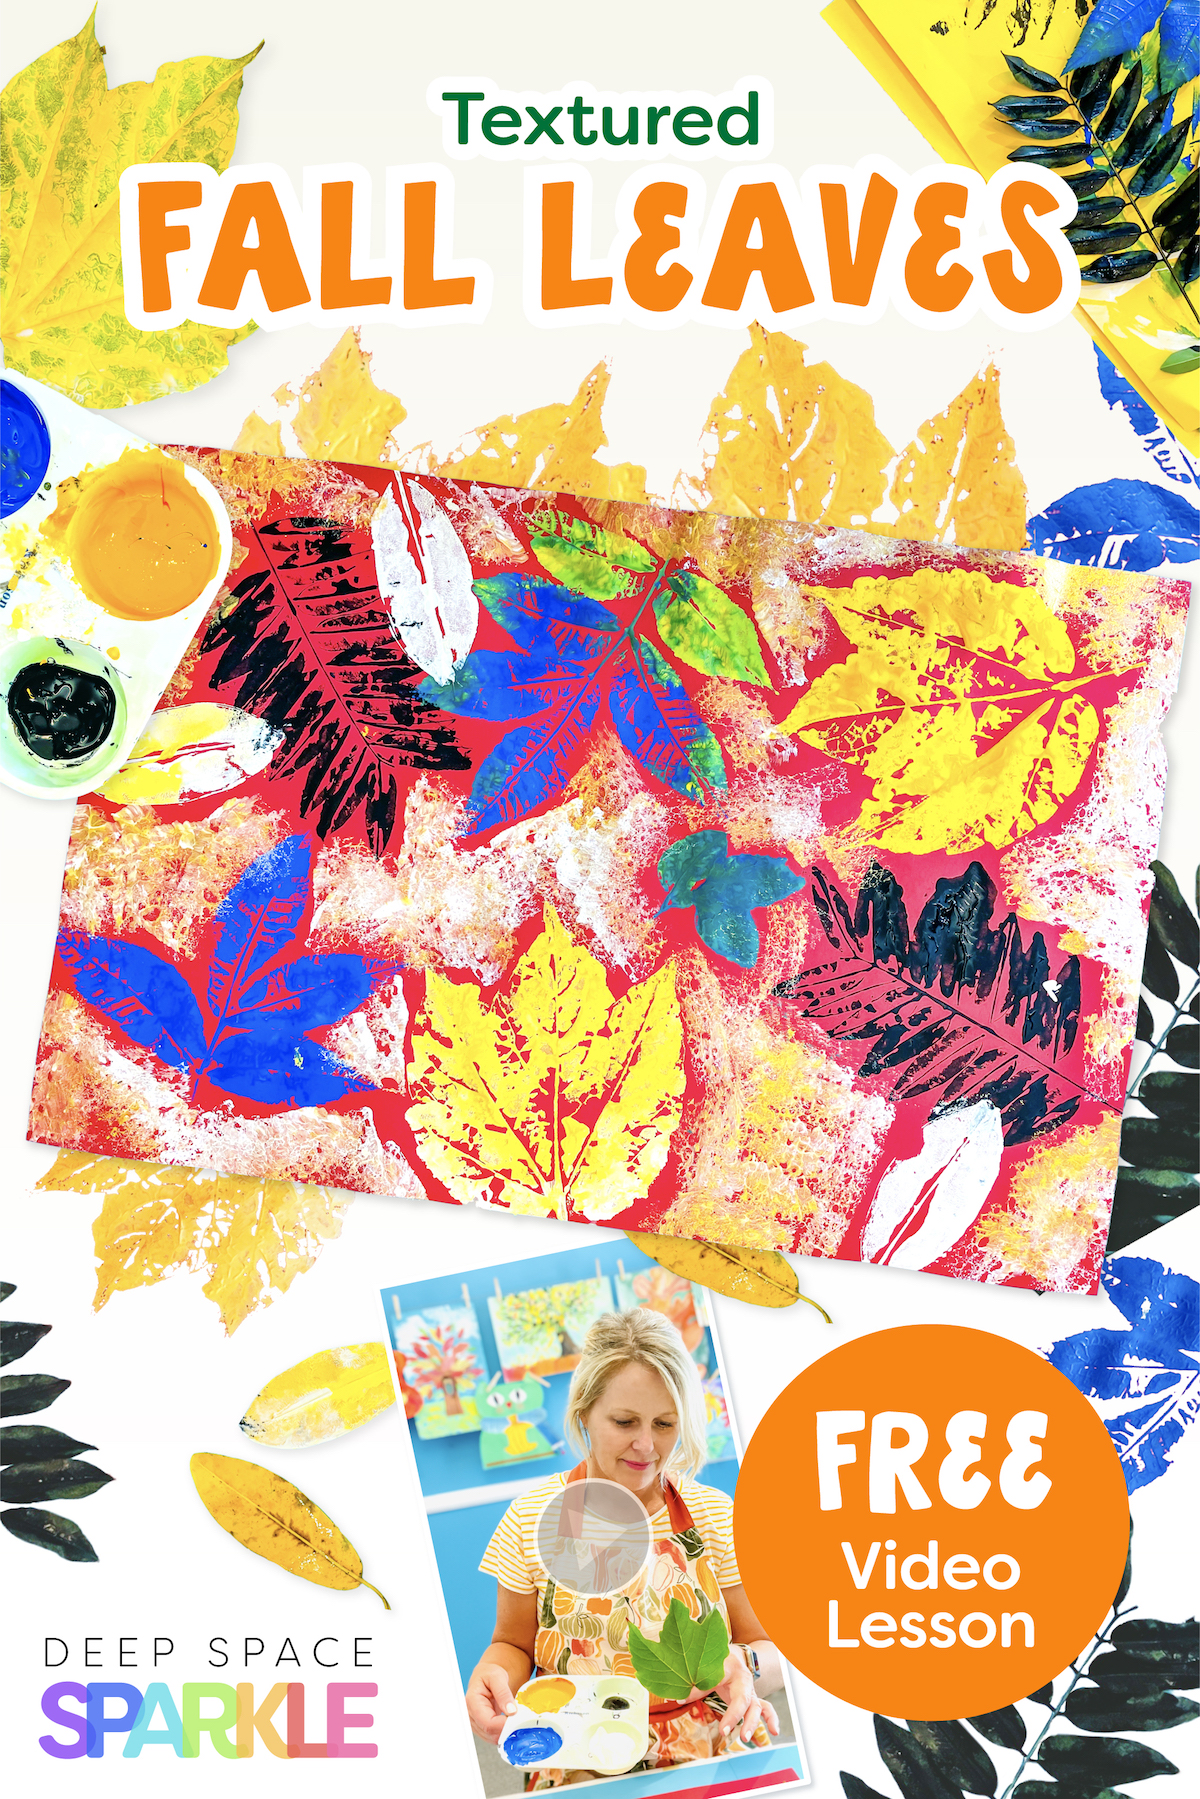 textured leaves fall art lesson for kids with video tutorial